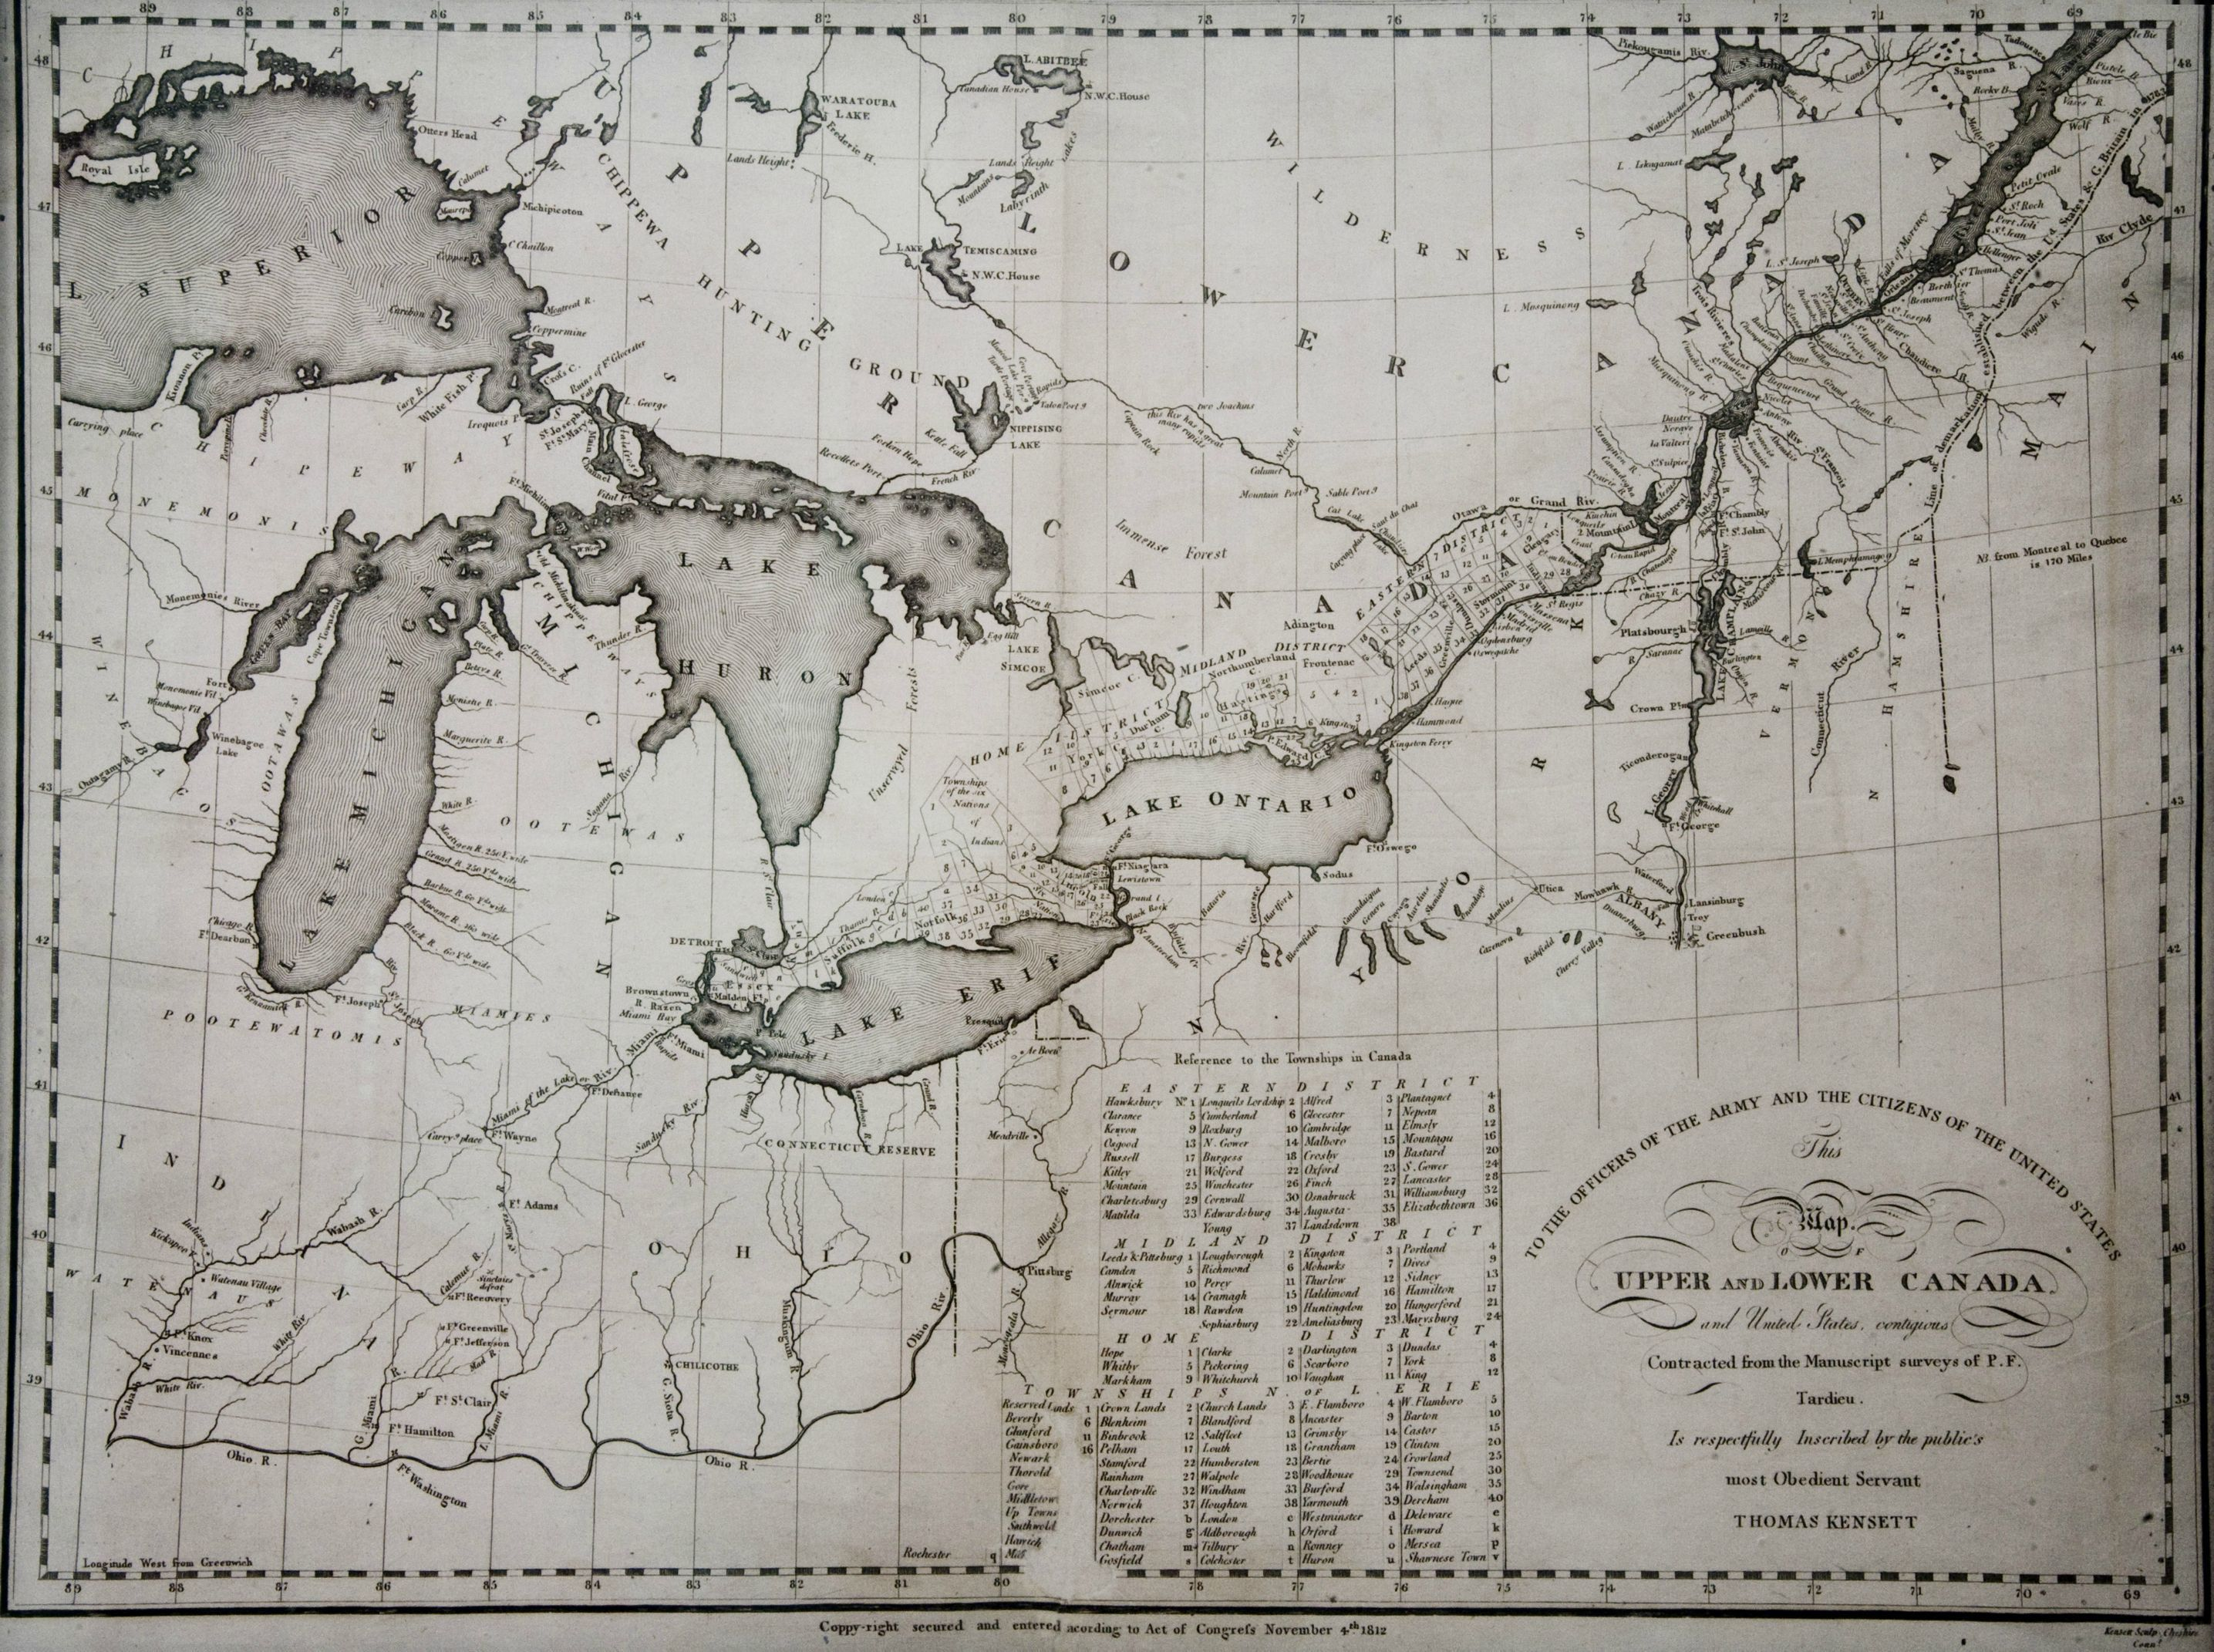 1812 map of Upper and Lower Canada